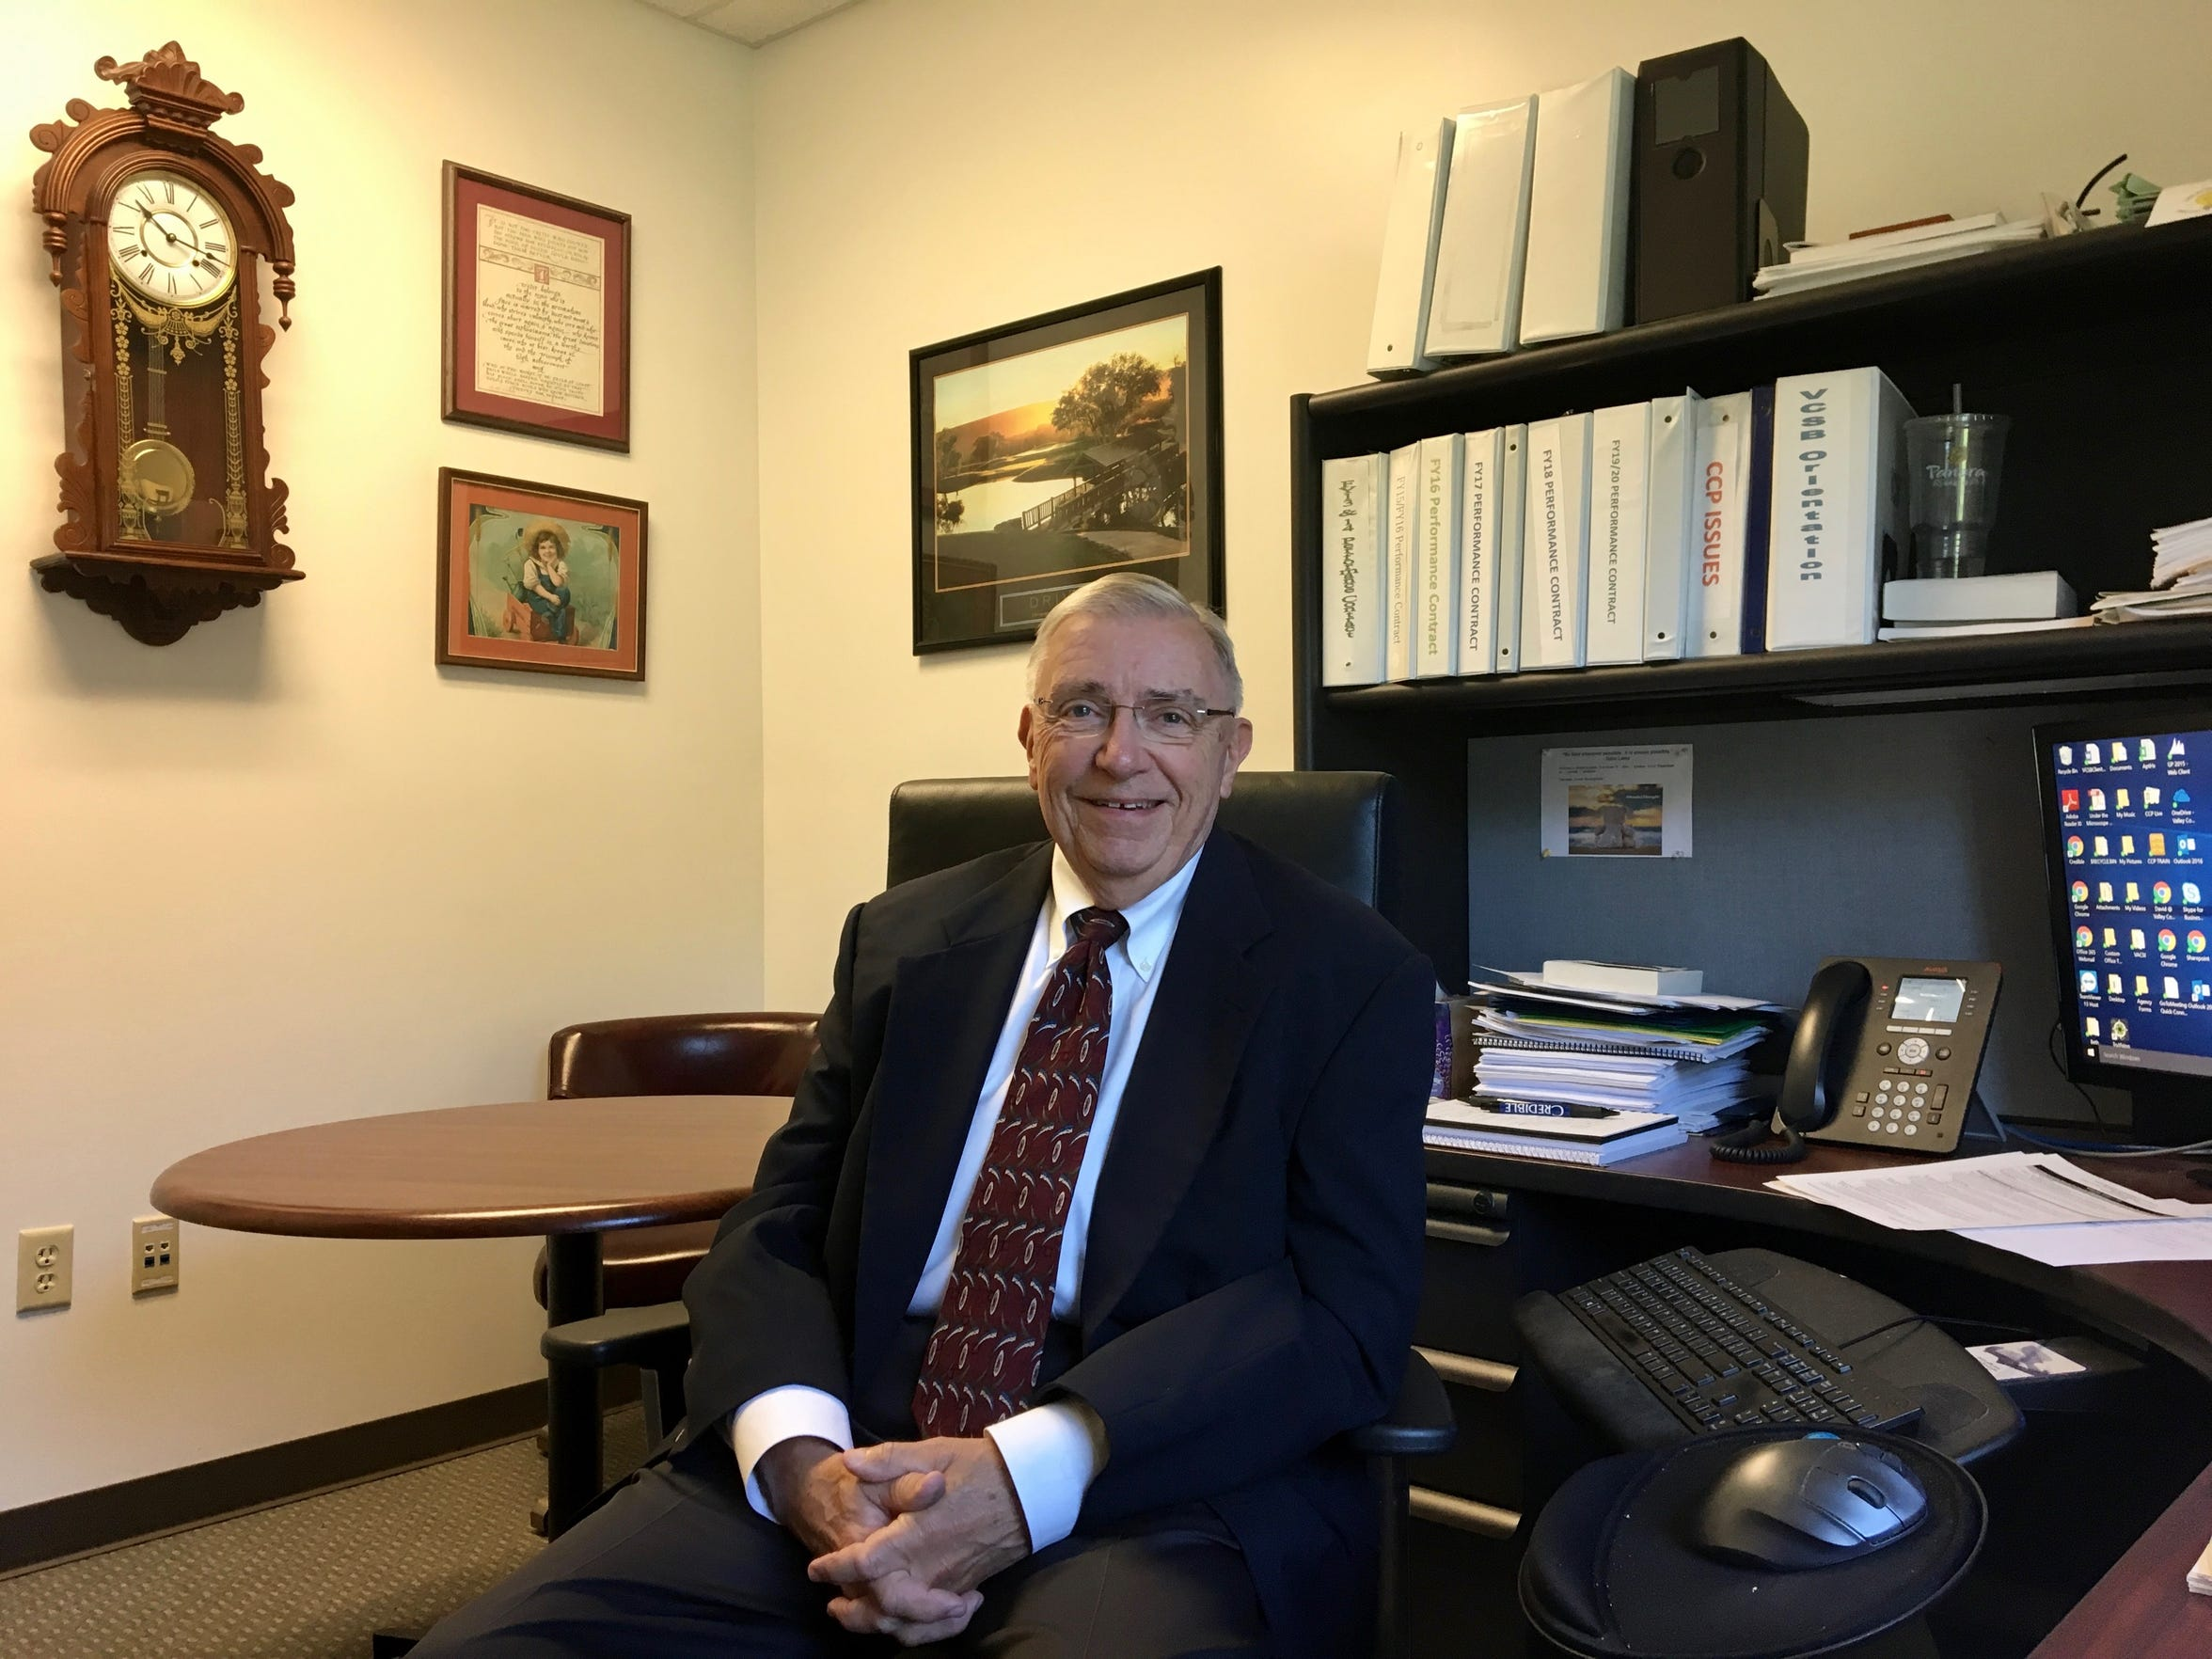 Photographed in his office on Monday, Oct. 1, 2018, David Deering, excecutive director of Valley Community Services Board in Staunton, talks about the severe shortage of child psychiatrists and state-owned child psychiatric facilities in Virginia.